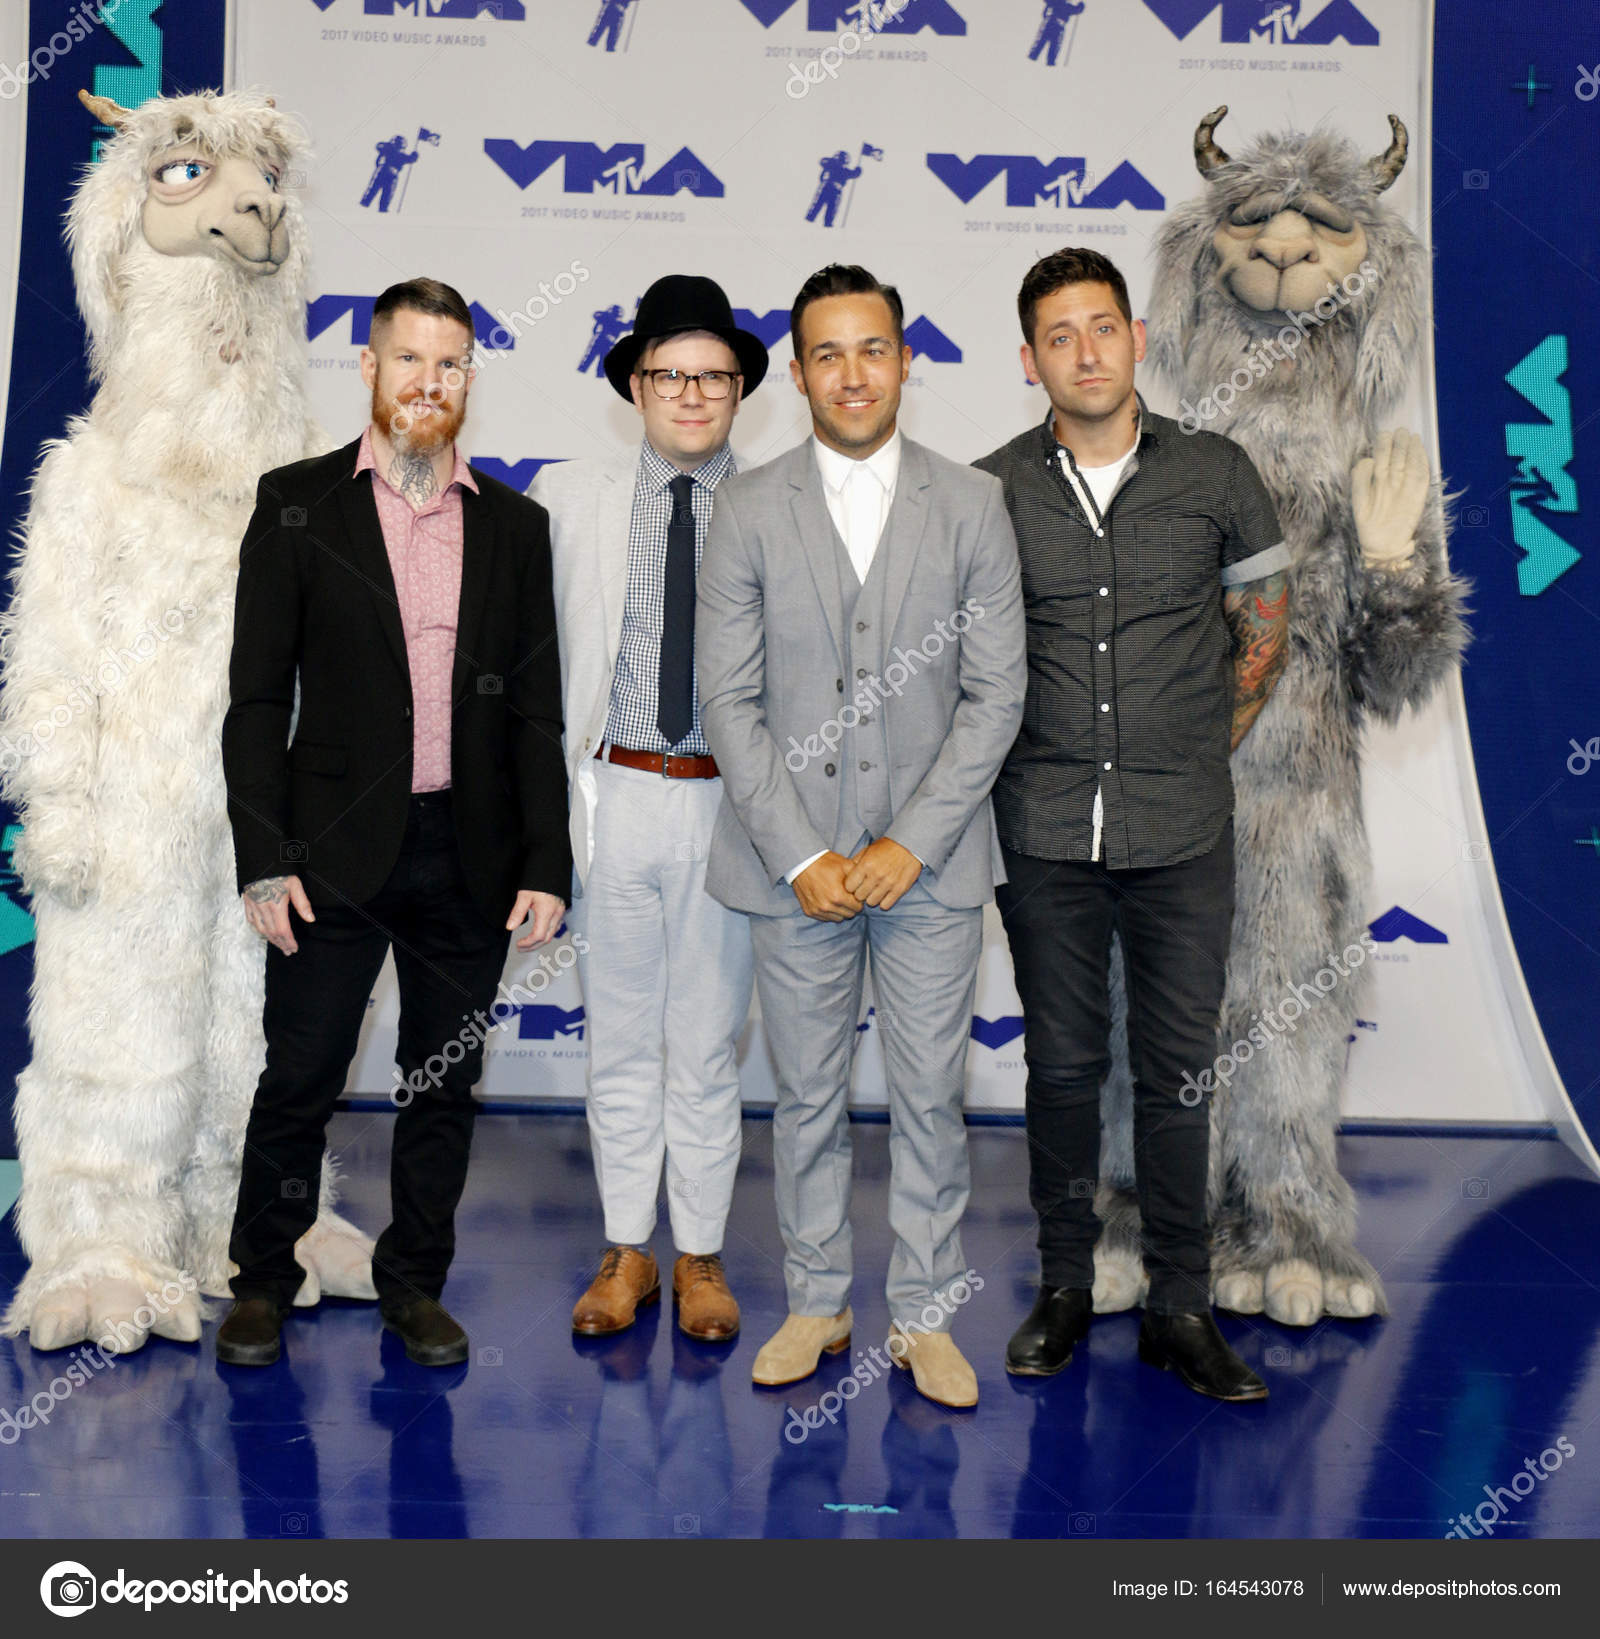 ¿Cuánto mide Craig Mabbitt? - Altura - Real height Depositphotos_164543078-stock-photo-patrick-stump-pete-wentz-joe